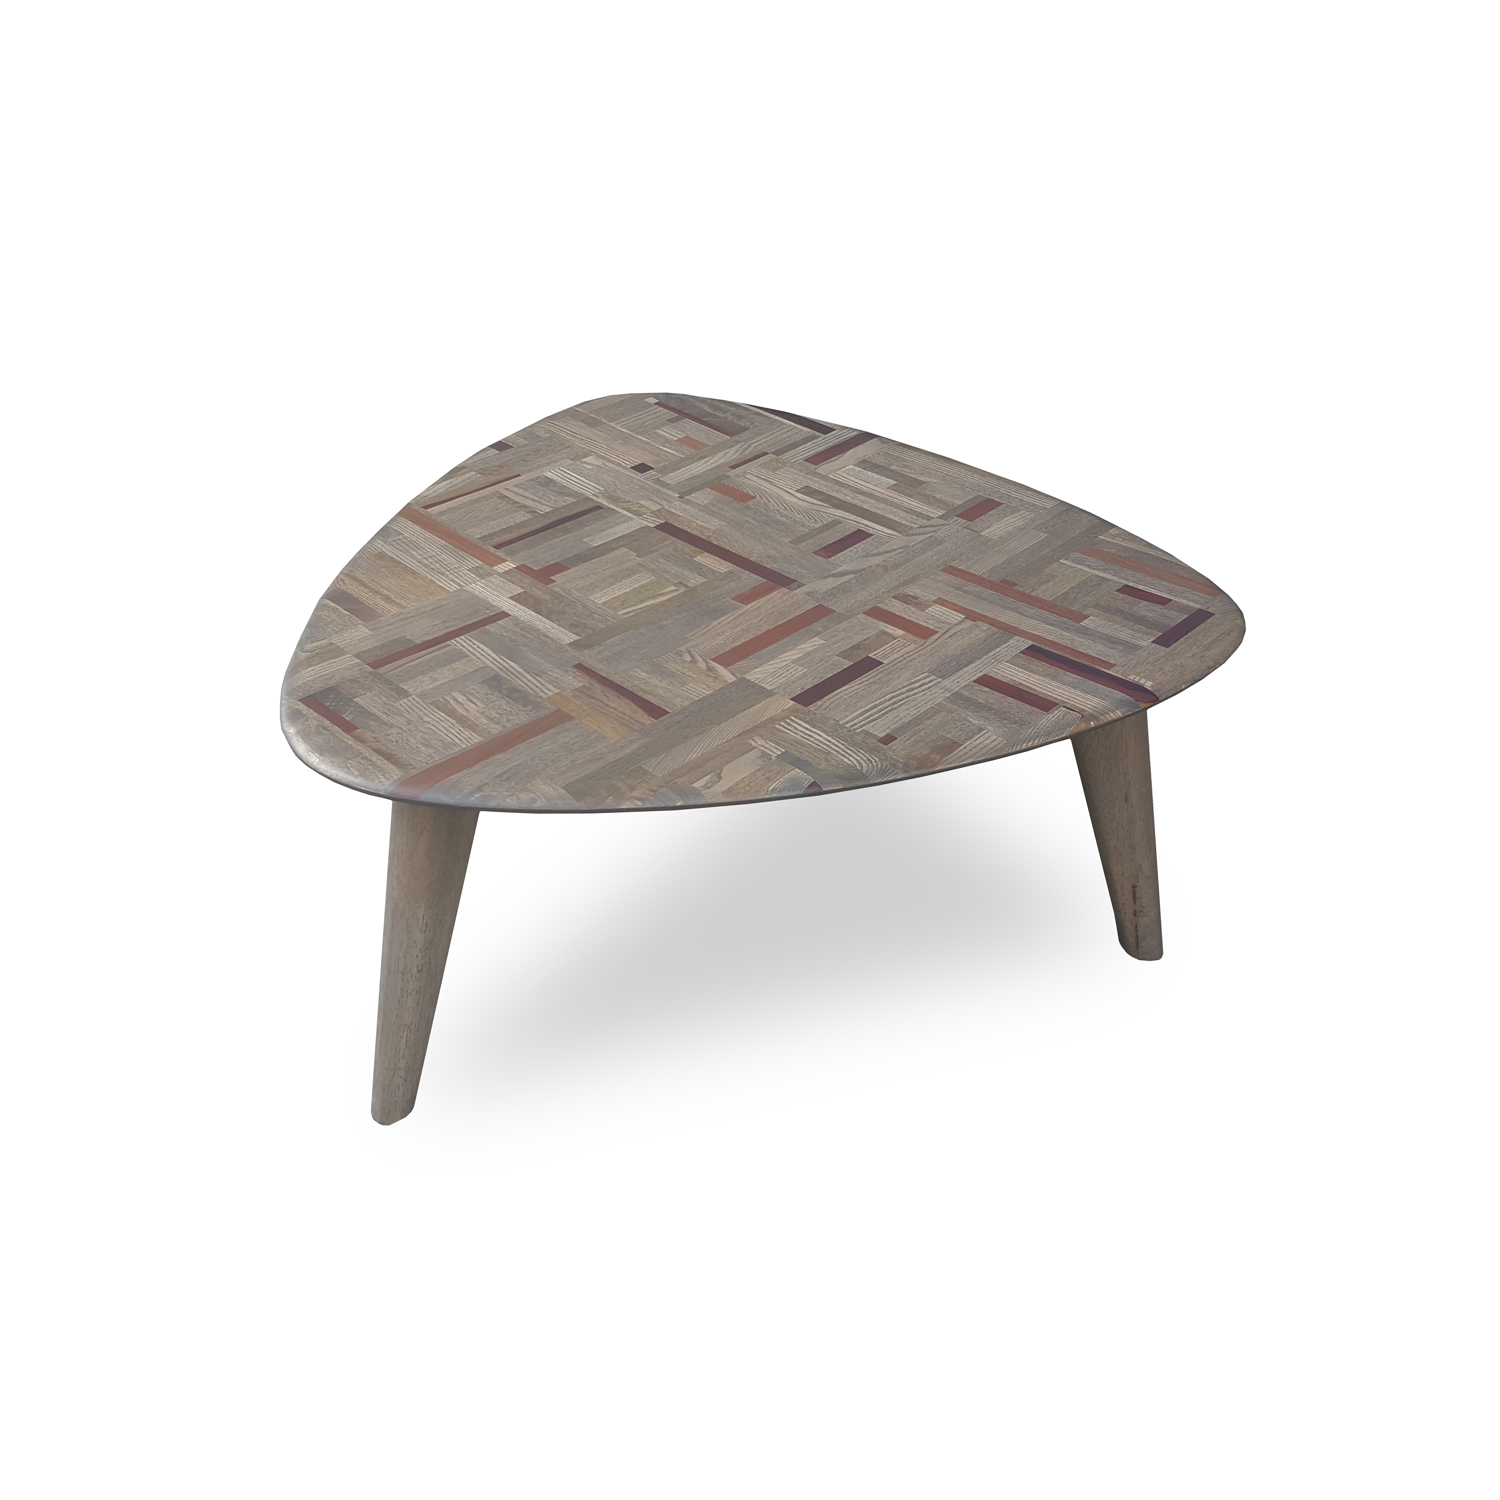 Triangle Coffee Table Wood.Philos Retro Triangle Coffee Table Mixwood Cft110 Mix